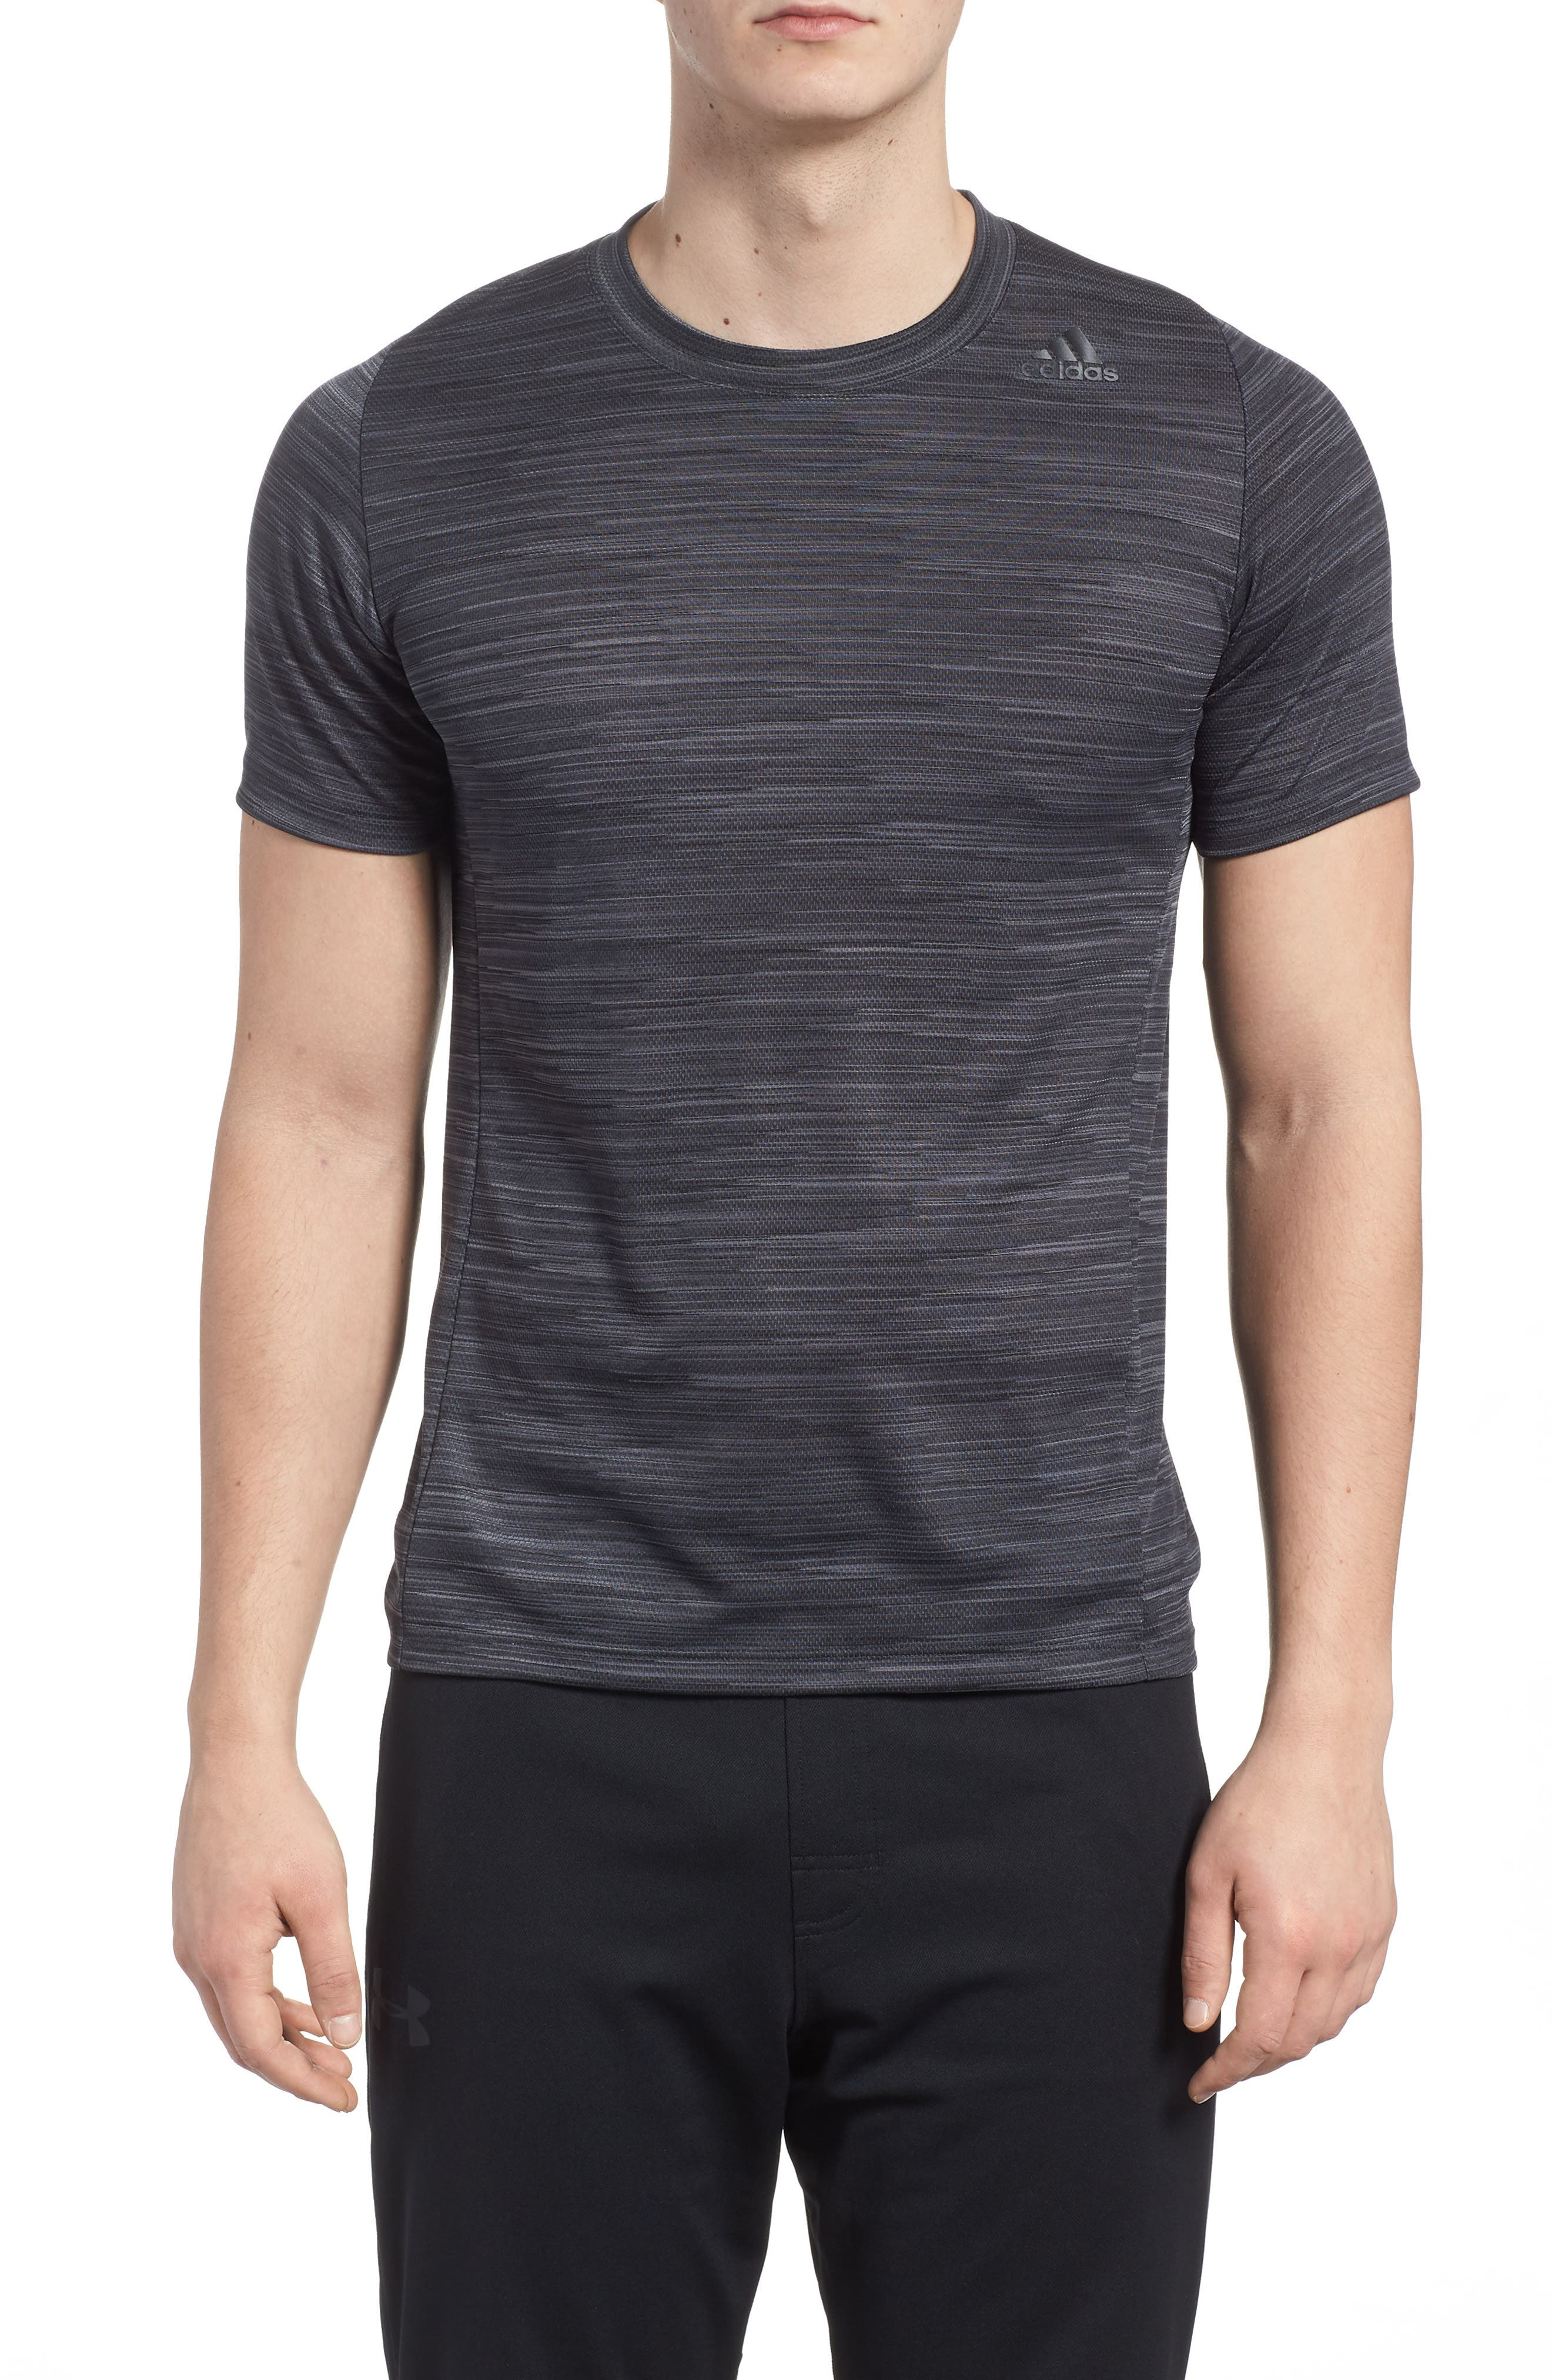 Ultimate Tech T-Shirt,                             Main thumbnail 1, color,                             Carbon